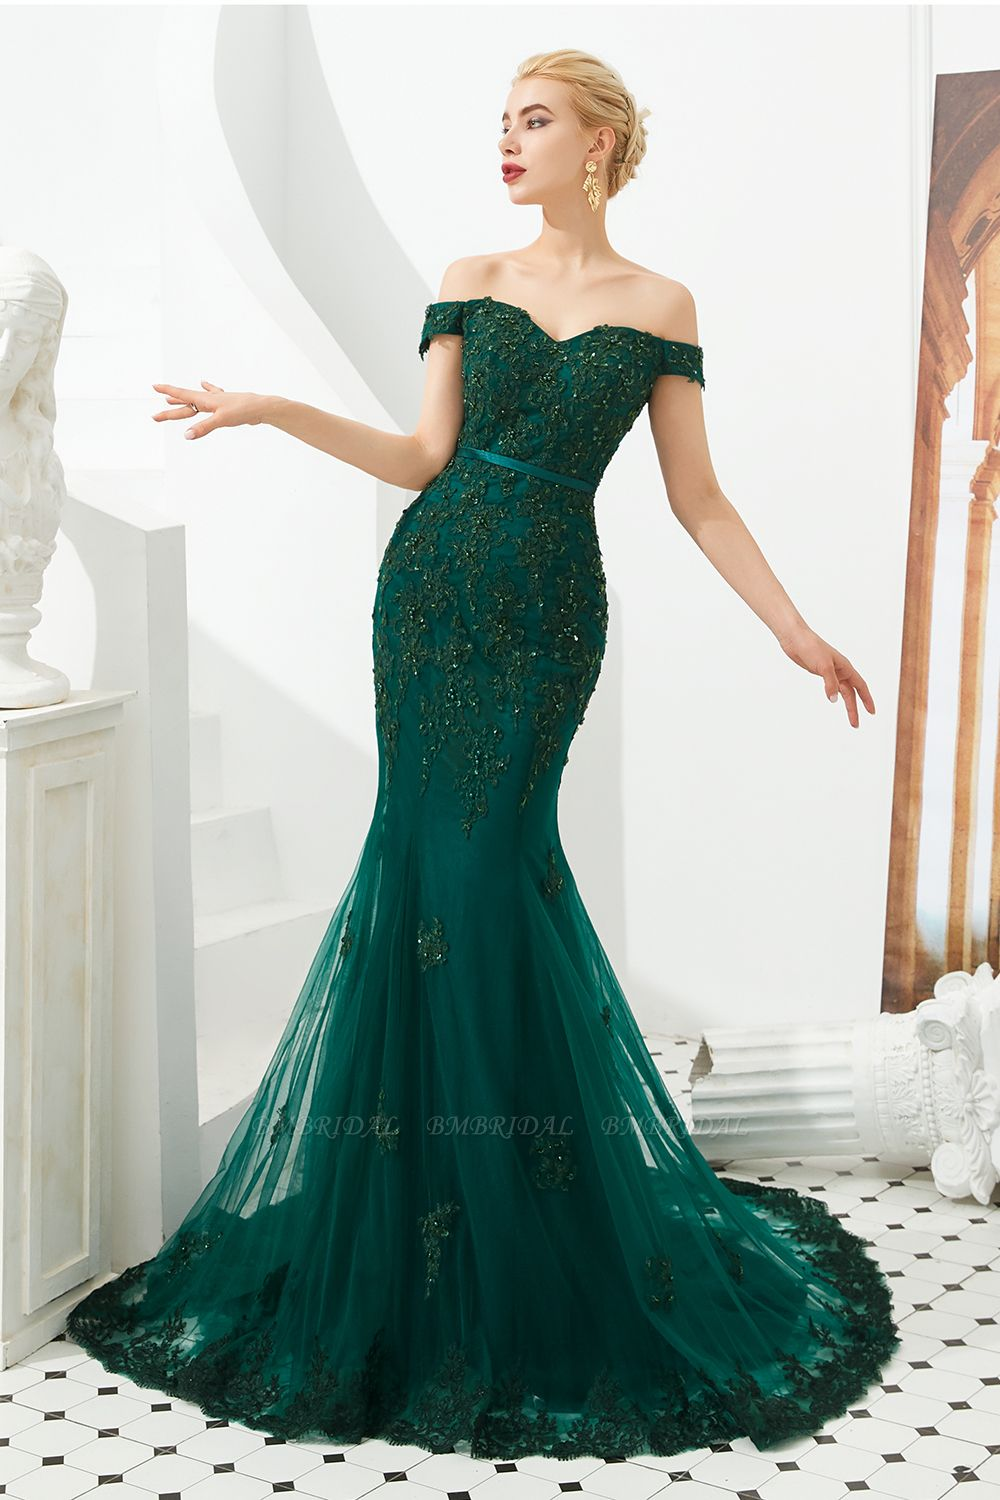 Bmbridal Off The Shoulder Green Prom Dress Long Mermaid Evening Gowns With Lace Appliques Green Prom Dress Long Green Formal Dresses Green Prom Dress [ 1500 x 1000 Pixel ]